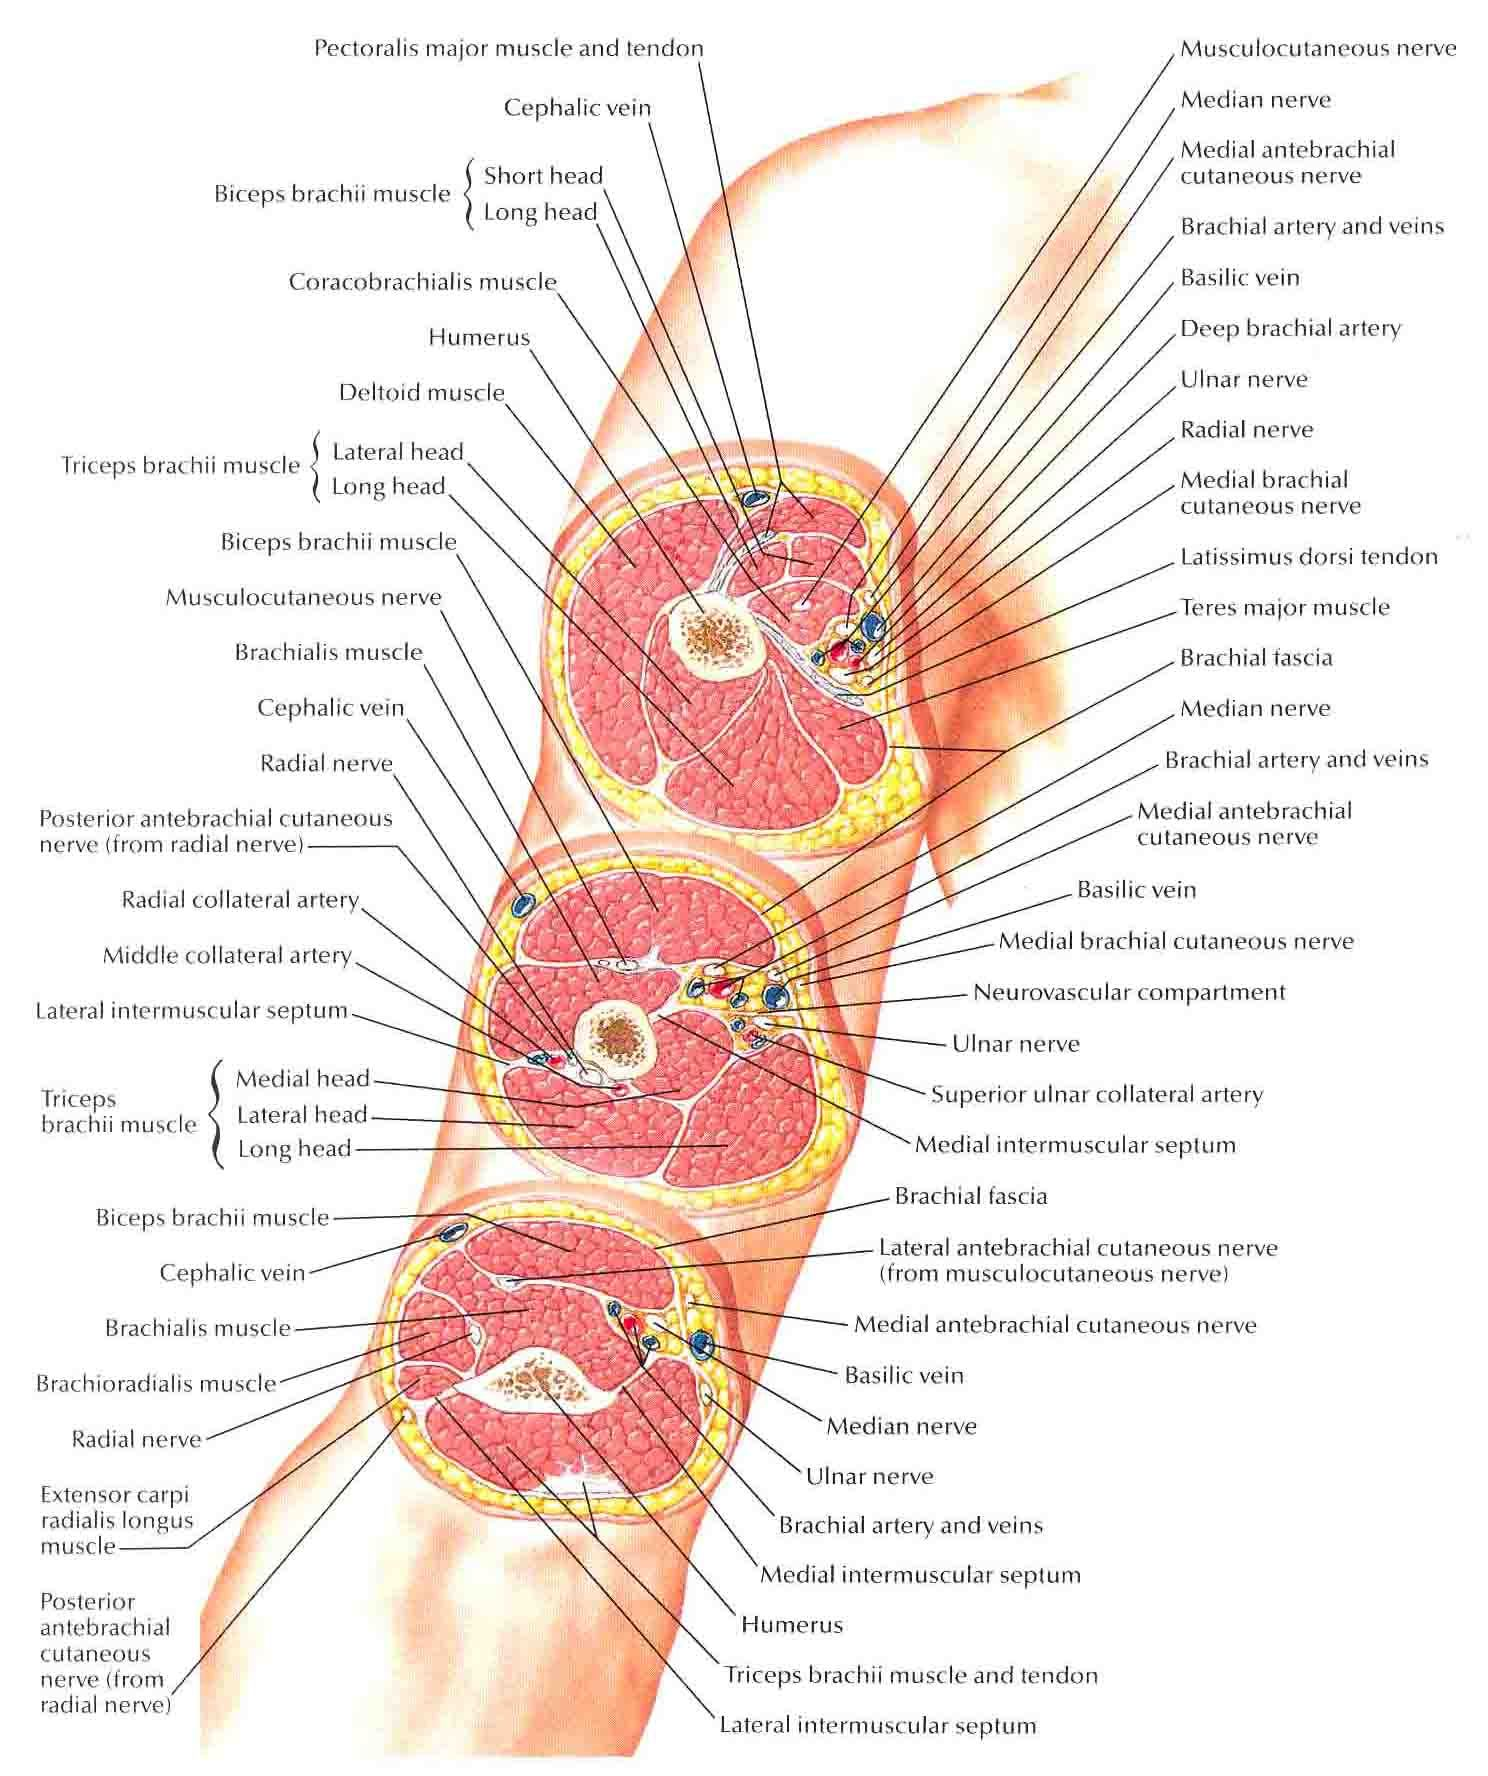 Pin By Oj Alimbuyuguen On Anatomize Pinterest Cross Section